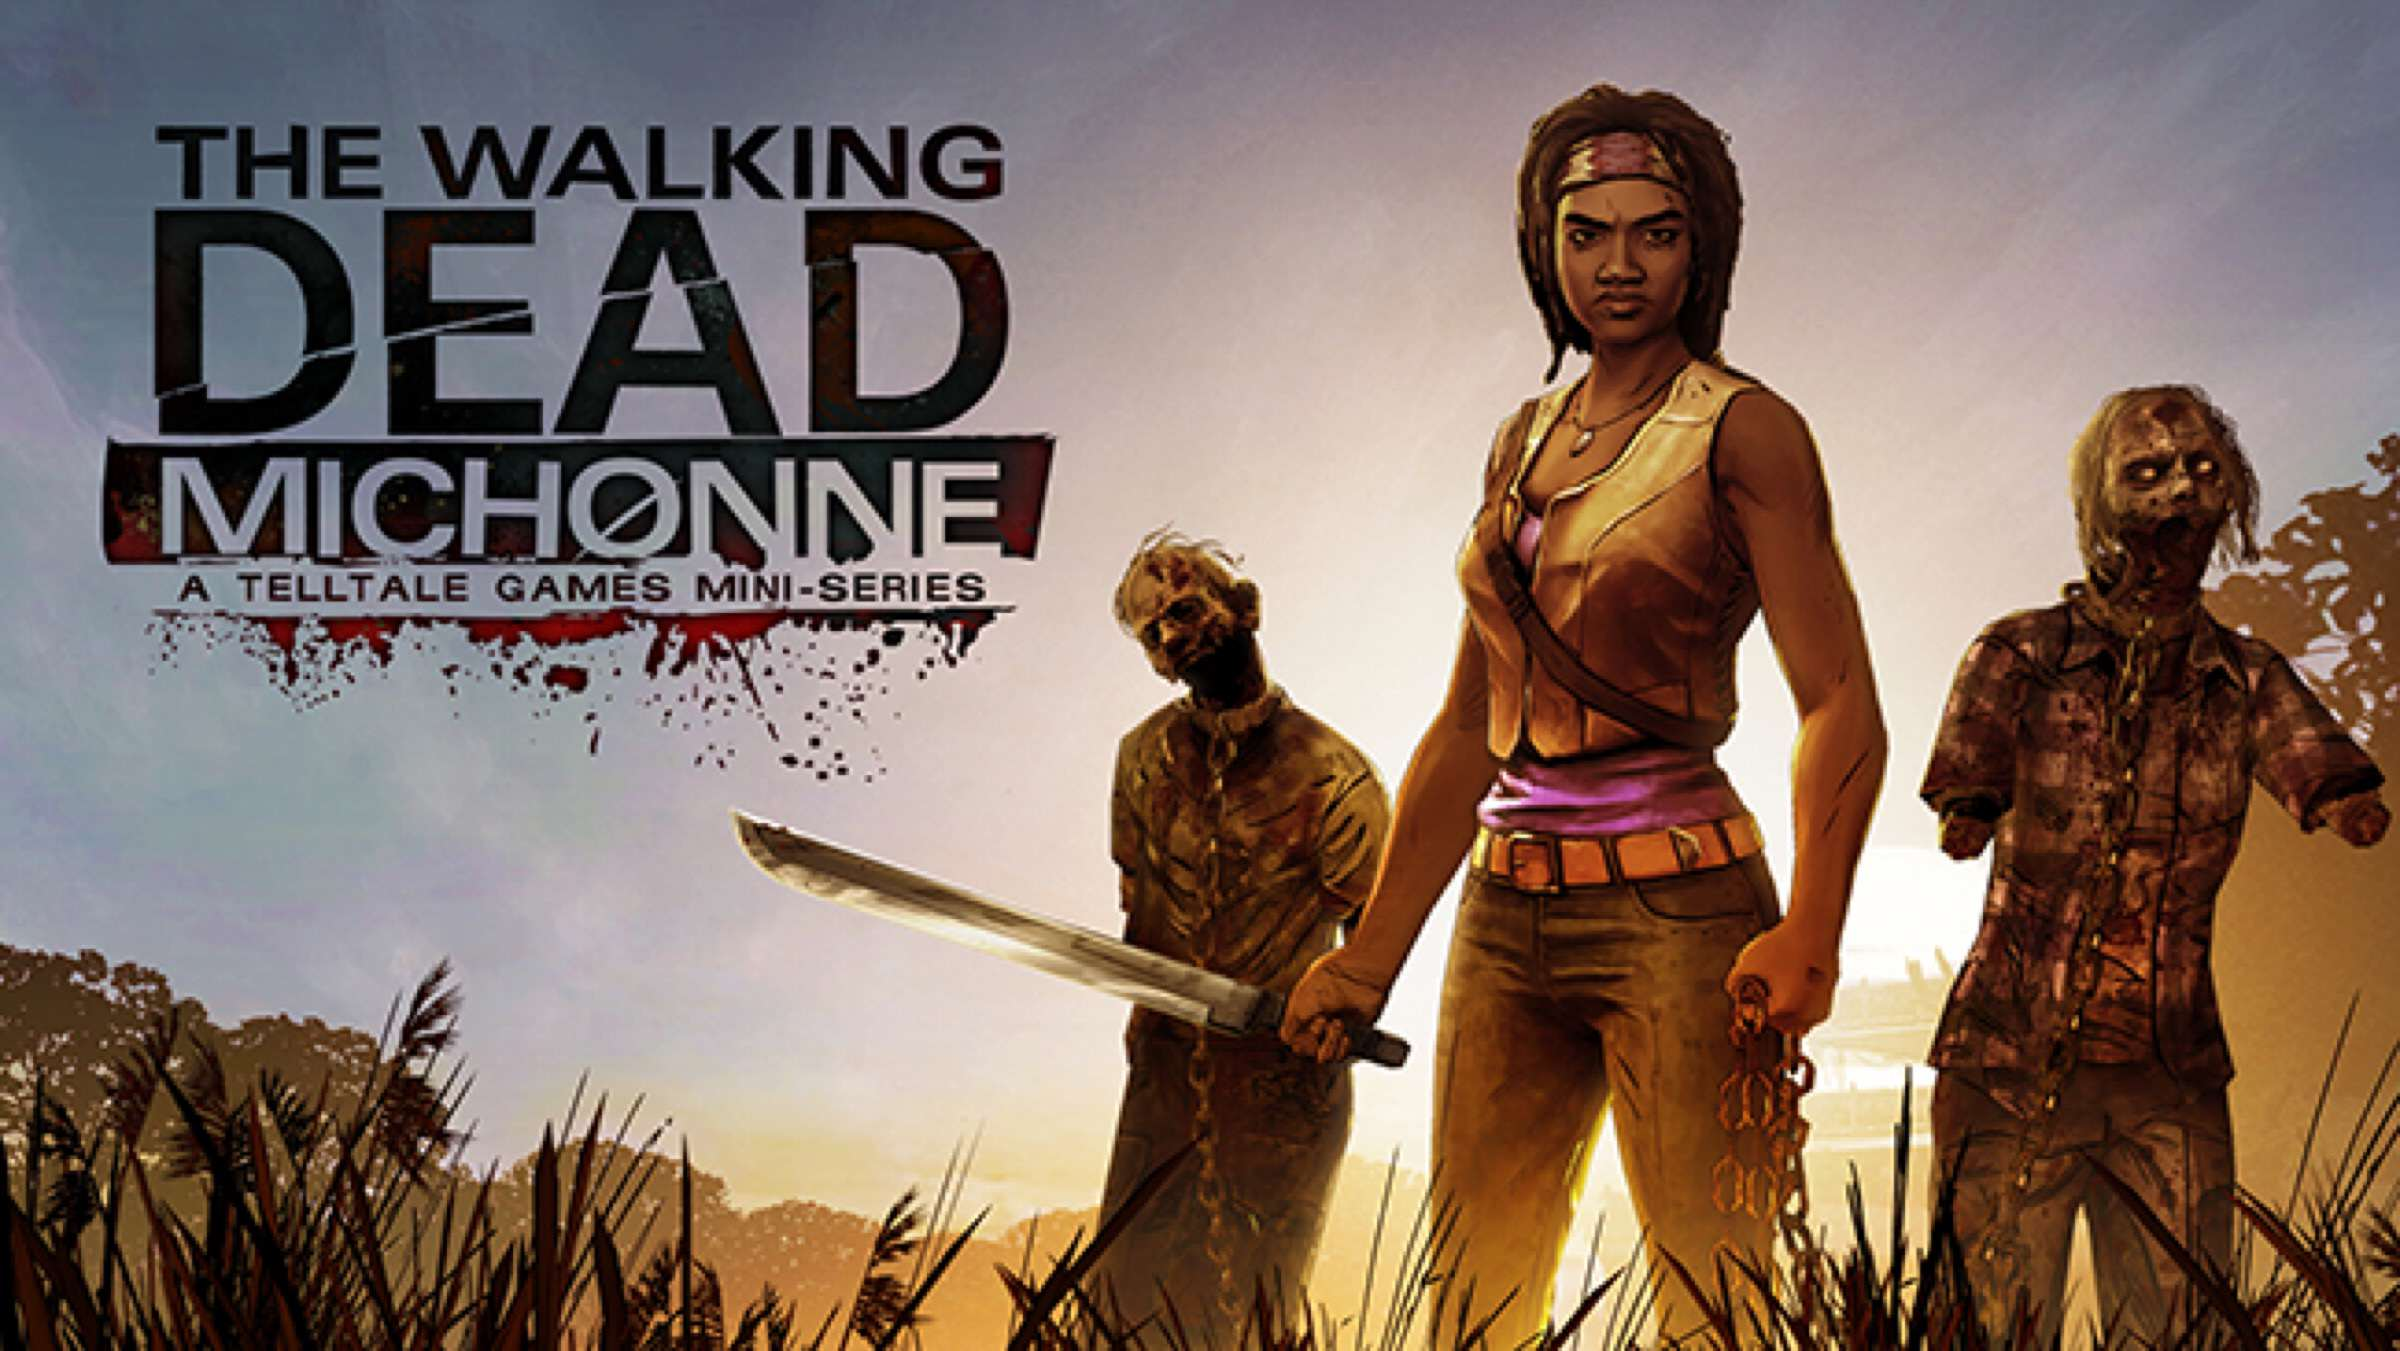 Telltales Walking Dead Michonne Miniseries Gets A Release Date 2015 06 16 6.10.58